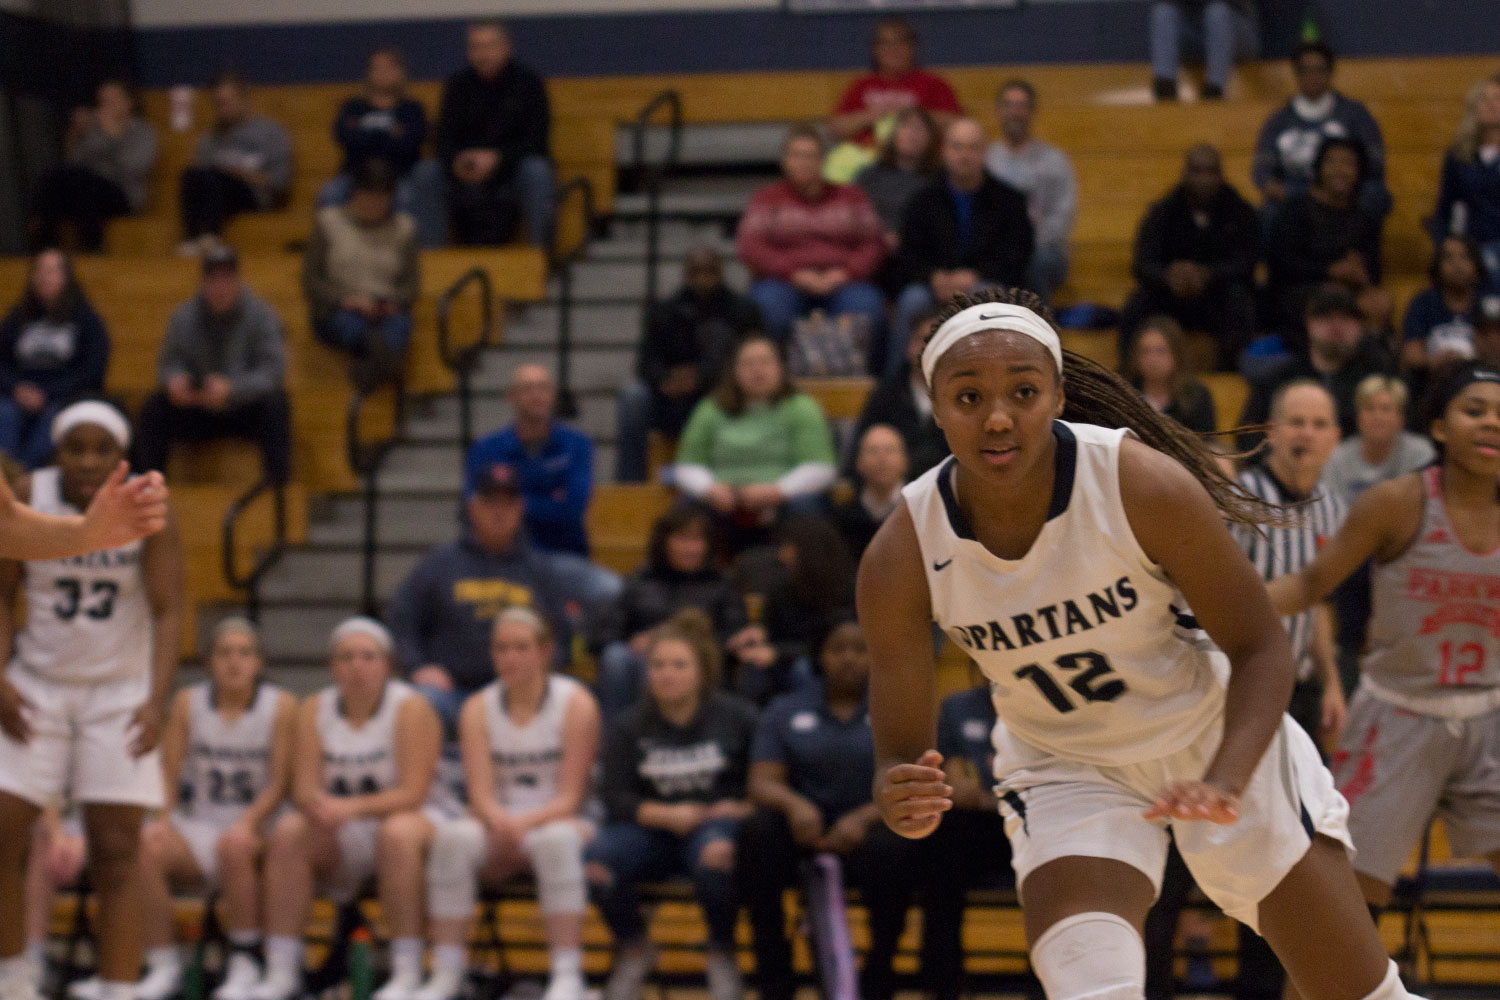 Yaniah Curry is on the move, prepping to catch a pass from a teammate. This is her fourth year on the FHC varsity team, an impressive feat for any player in any sport, and will be attending the University of Toledo in Ohio on a basketball scholarship.